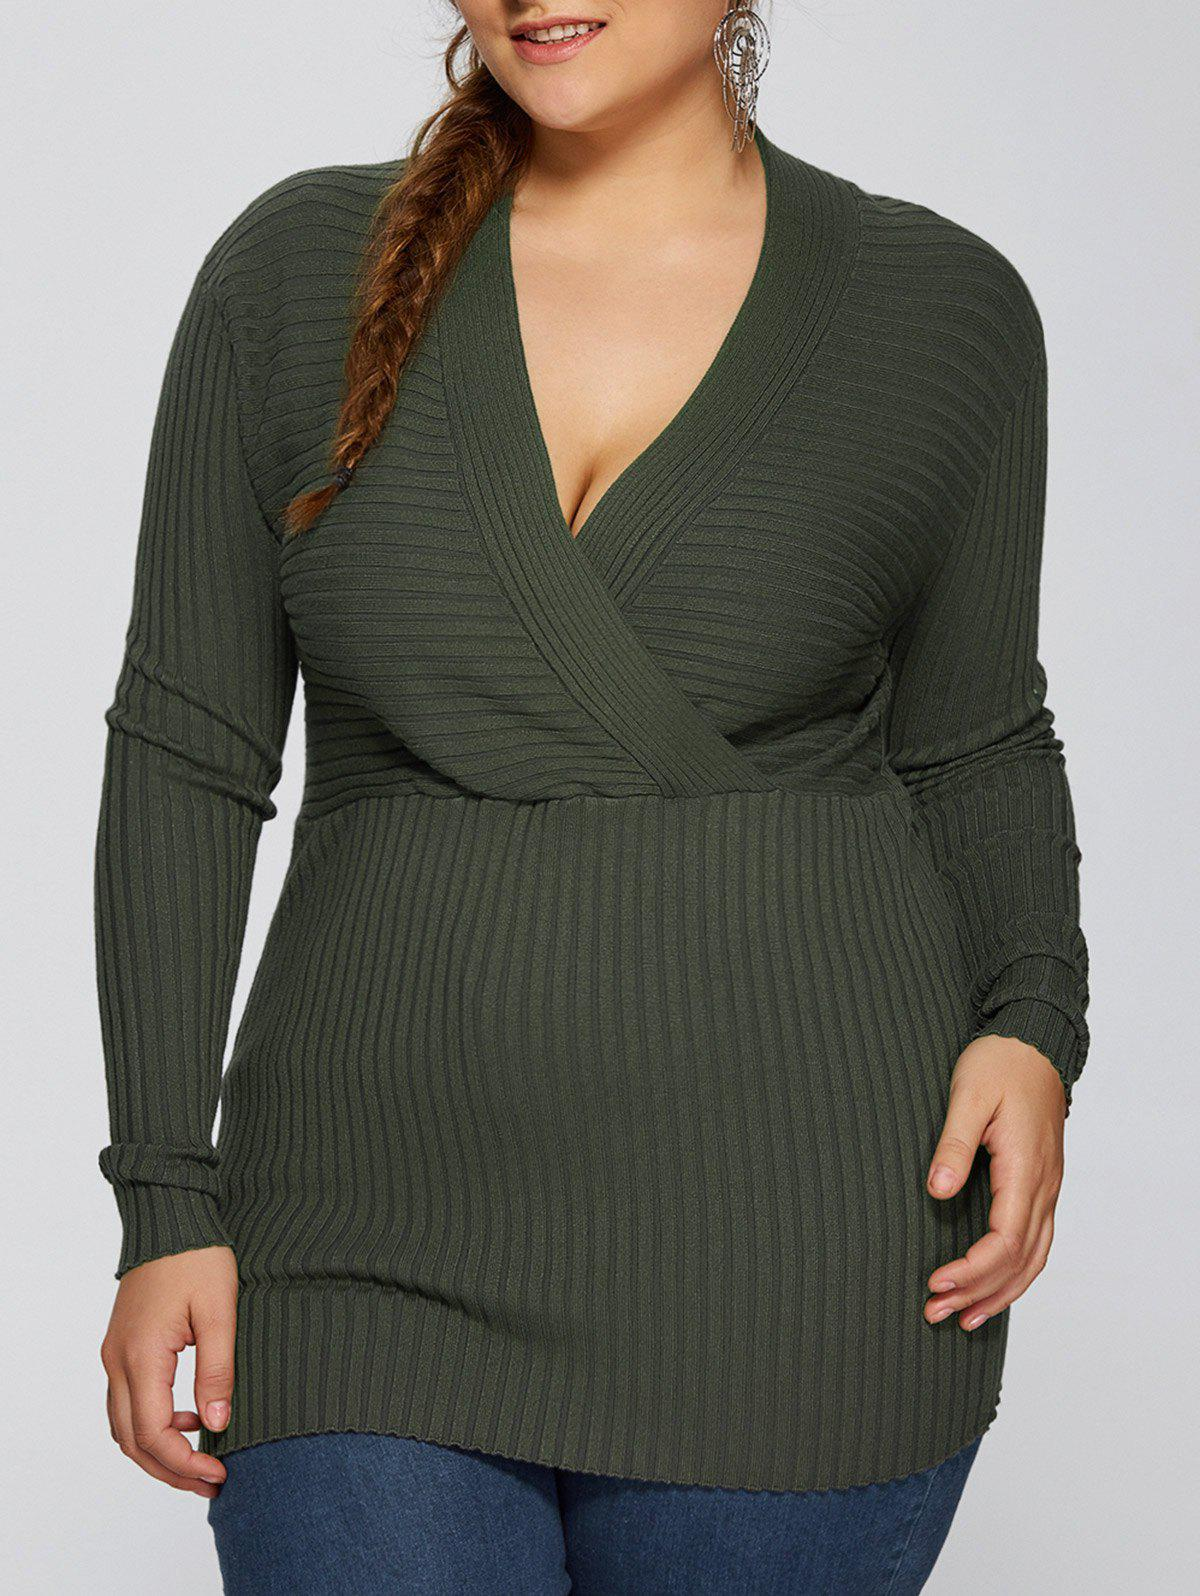 Plus Size V Neck Pullover SweaterWOMEN<br><br>Size: 3XL; Color: ARMY GREEN; Type: Pullovers; Material: Polyester; Sleeve Length: Full; Collar: V-Neck; Style: Fashion; Season: Fall,Spring; Pattern Type: Solid; Weight: 0.380kg; Package Contents: 1 x Sweater;